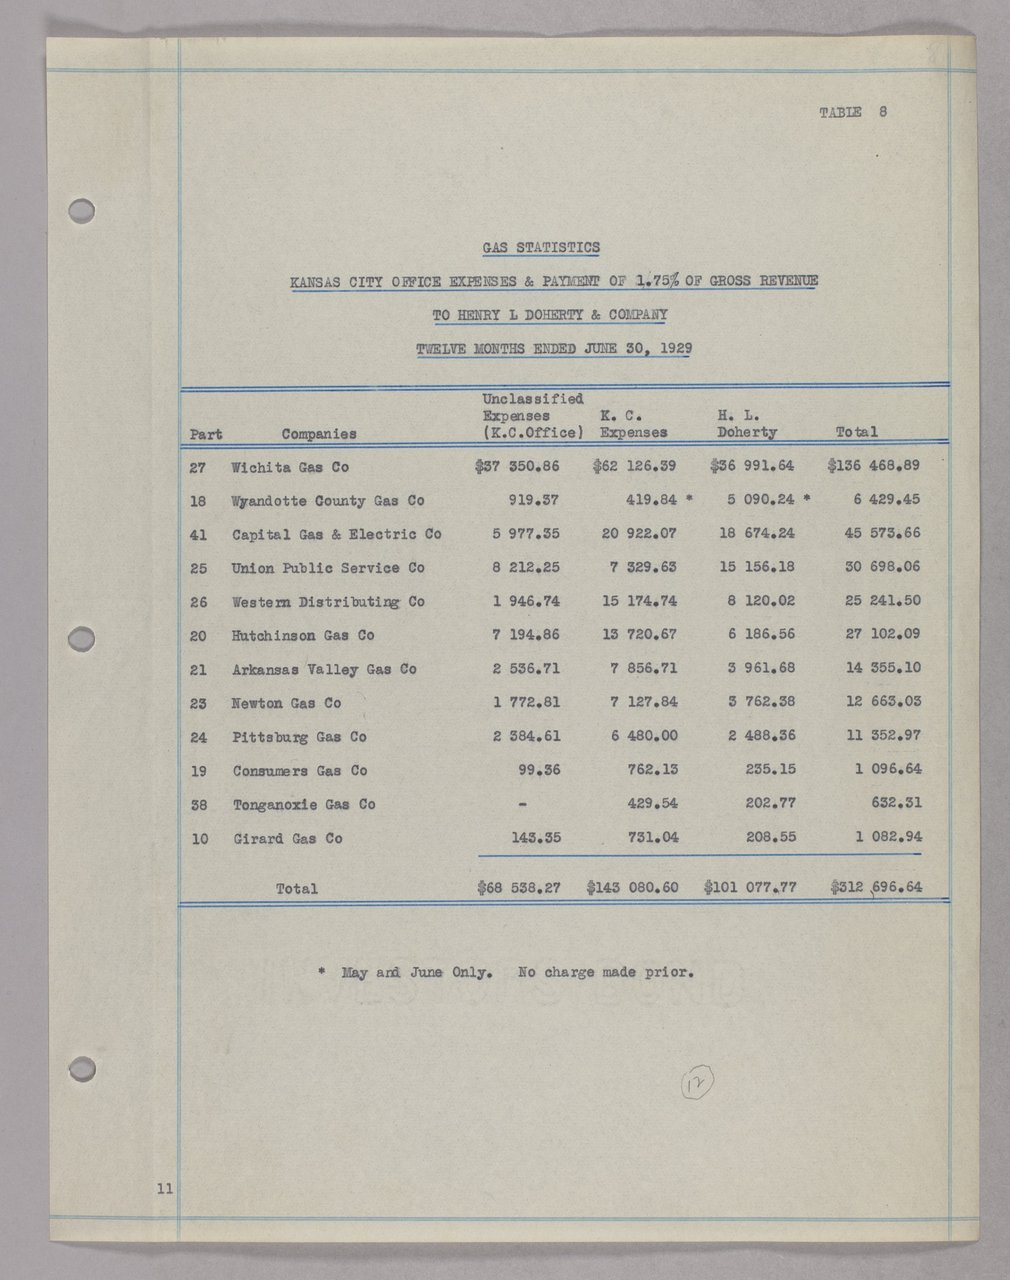 Governor Clyde M. Reed and Henry L. Doherty correspondence - 20